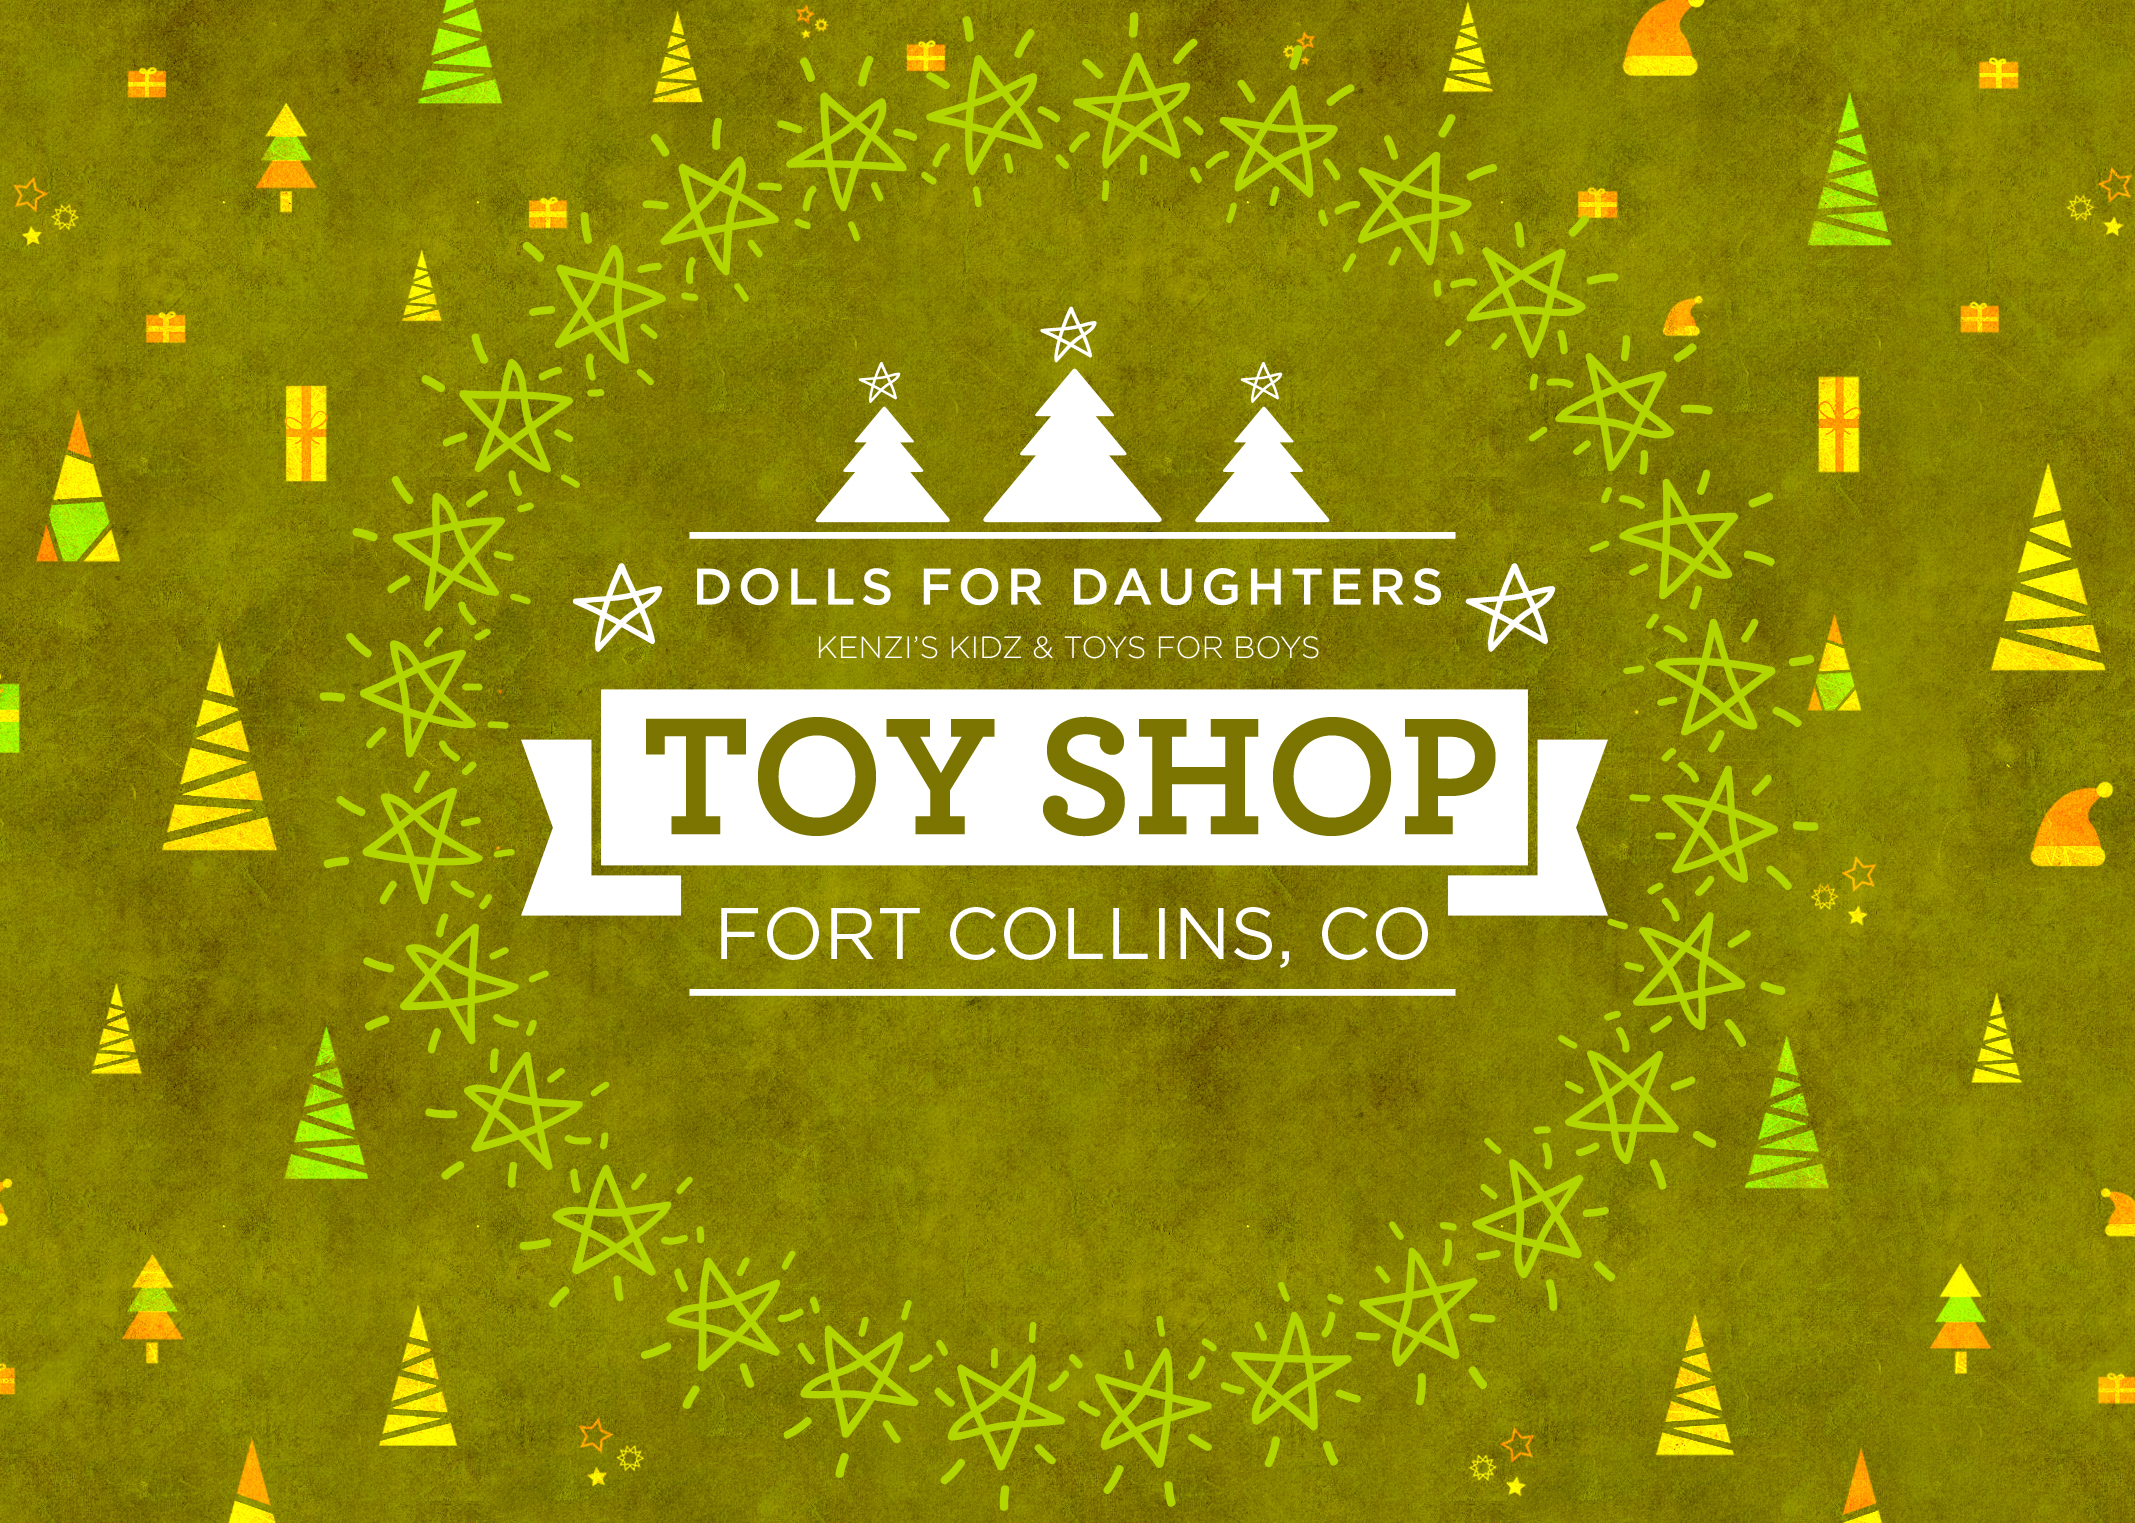 Toy Shop Fort Collins | Dolls for Daughters®